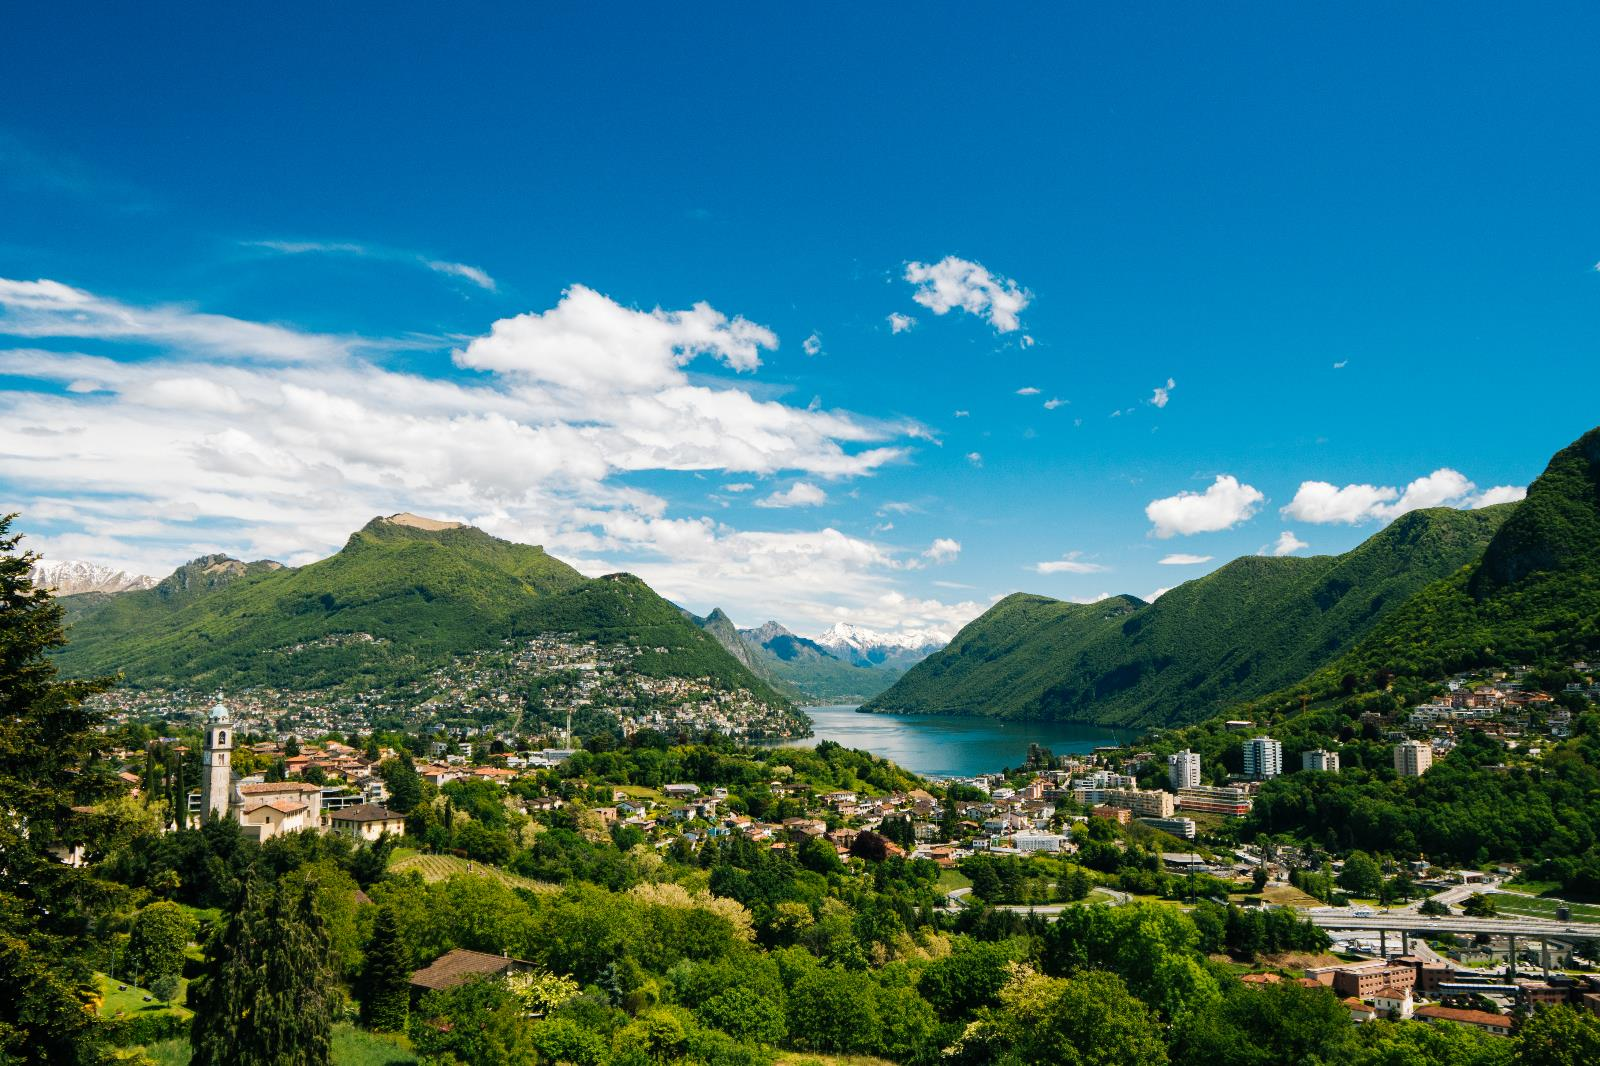 Villages and countryside, View of Lugano from Collina d'Oro